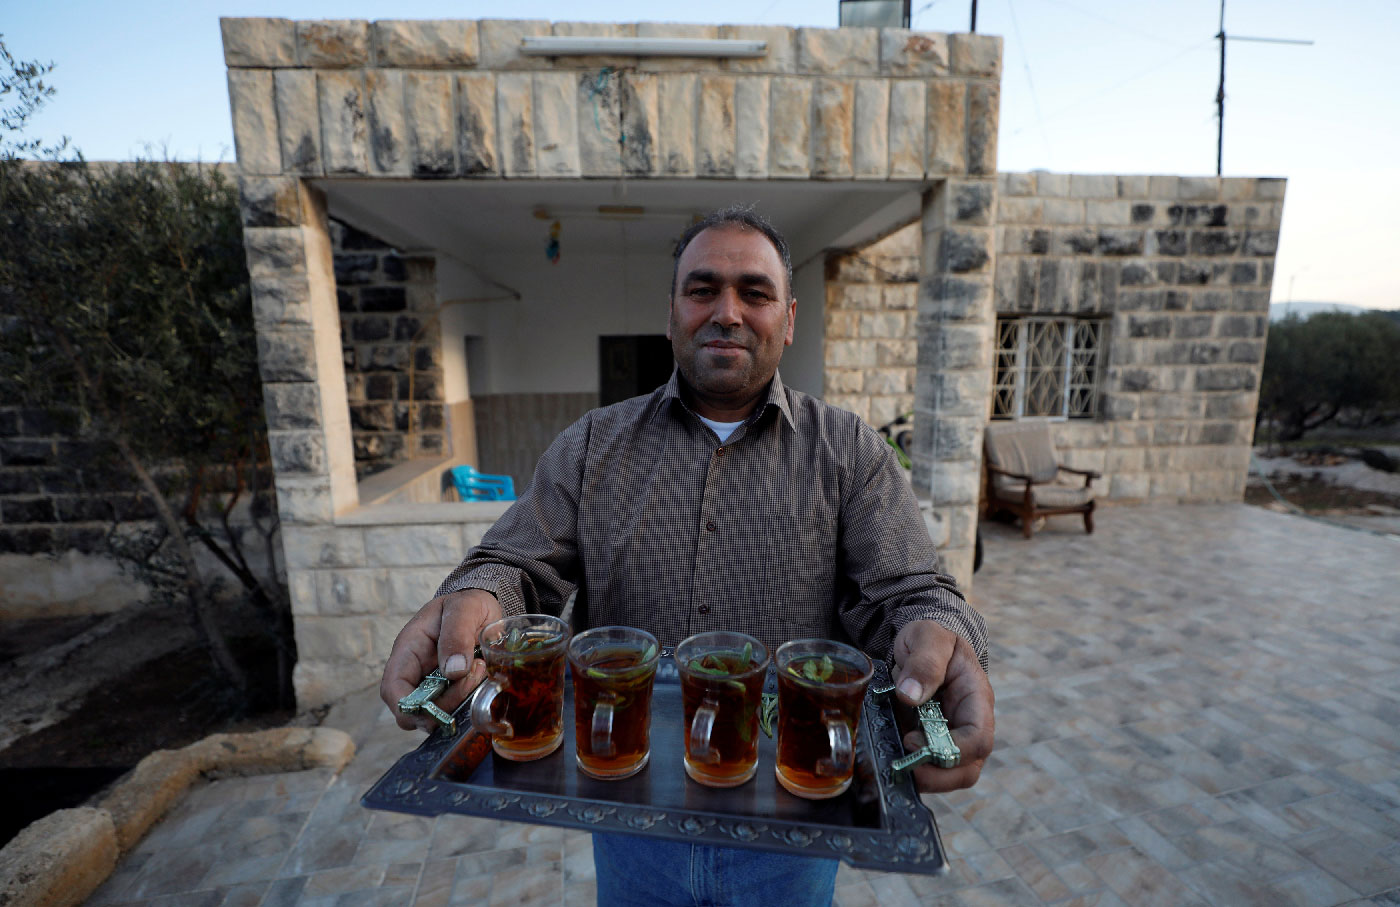 The uncle of Rashida Tlaib, the first Palestinian-American woman to be elected to the U.S. Congress, offers tea after her victory, in Beit Ur Al-Fauqa, in the occupied West Bank November 7, 2018.